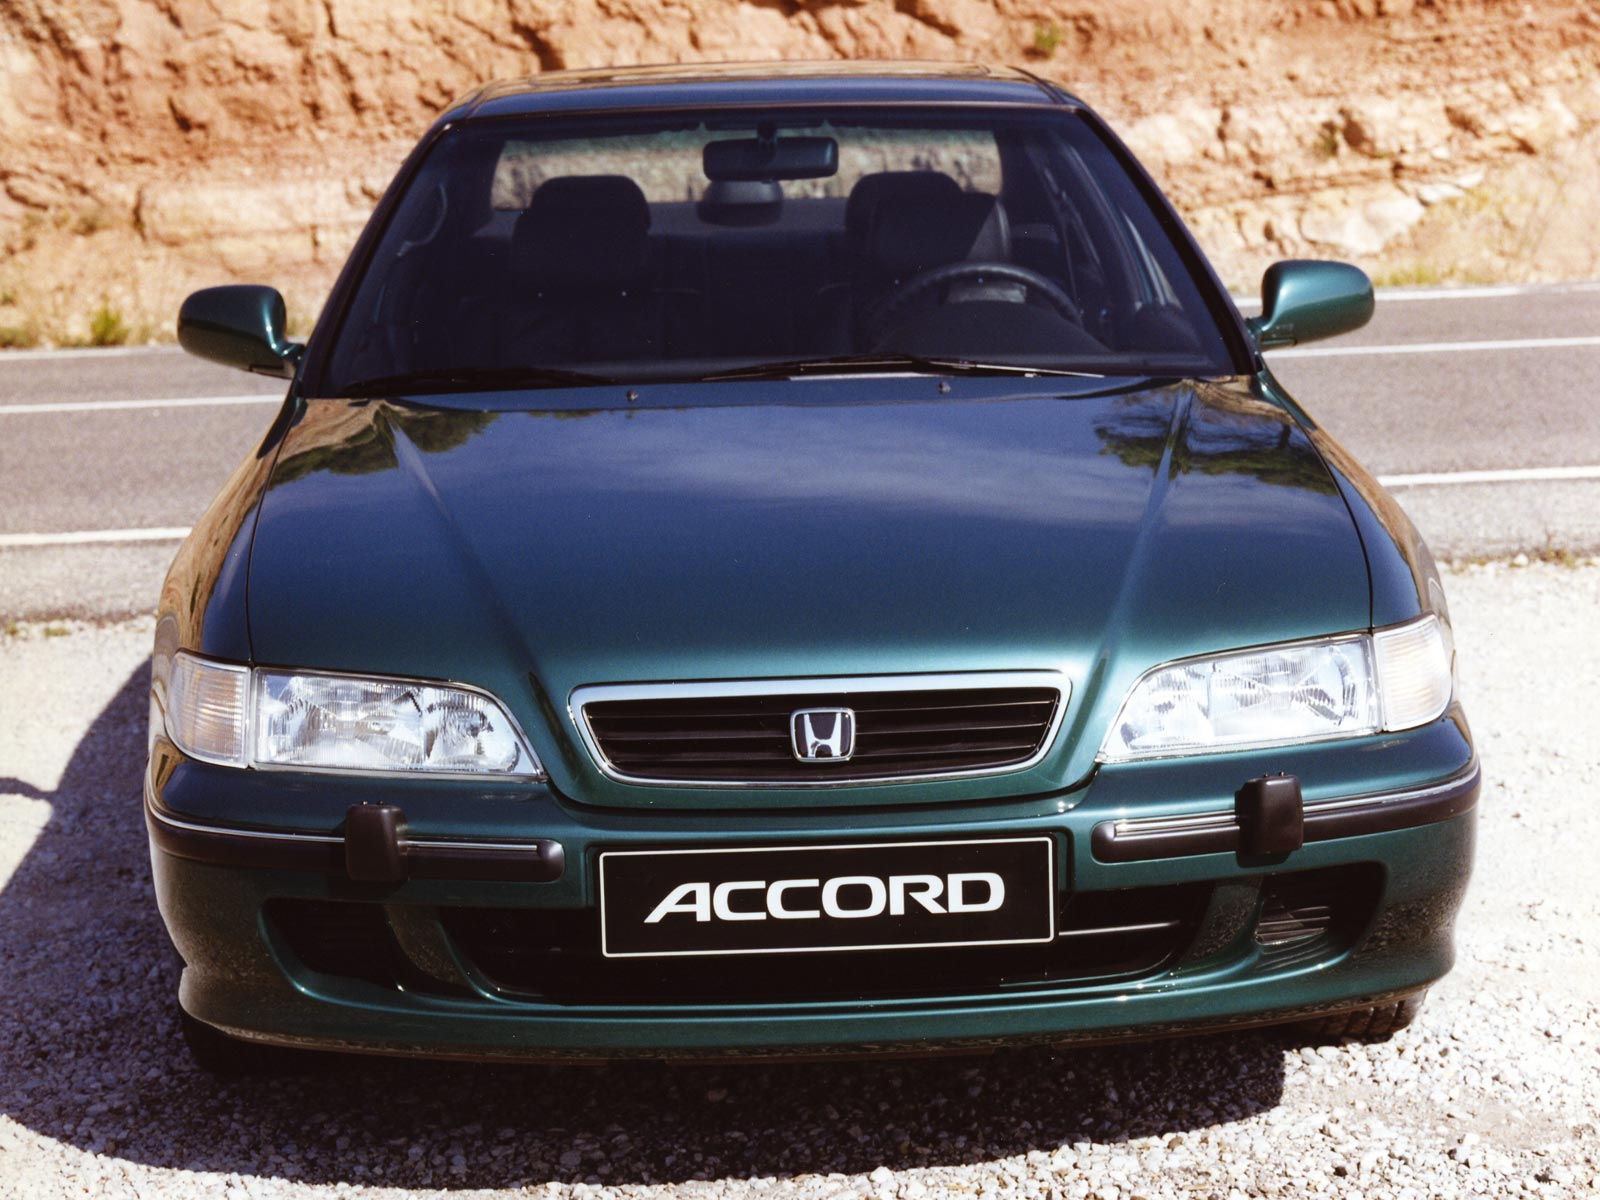 Honda Accord 1.8 1993 photo - 12